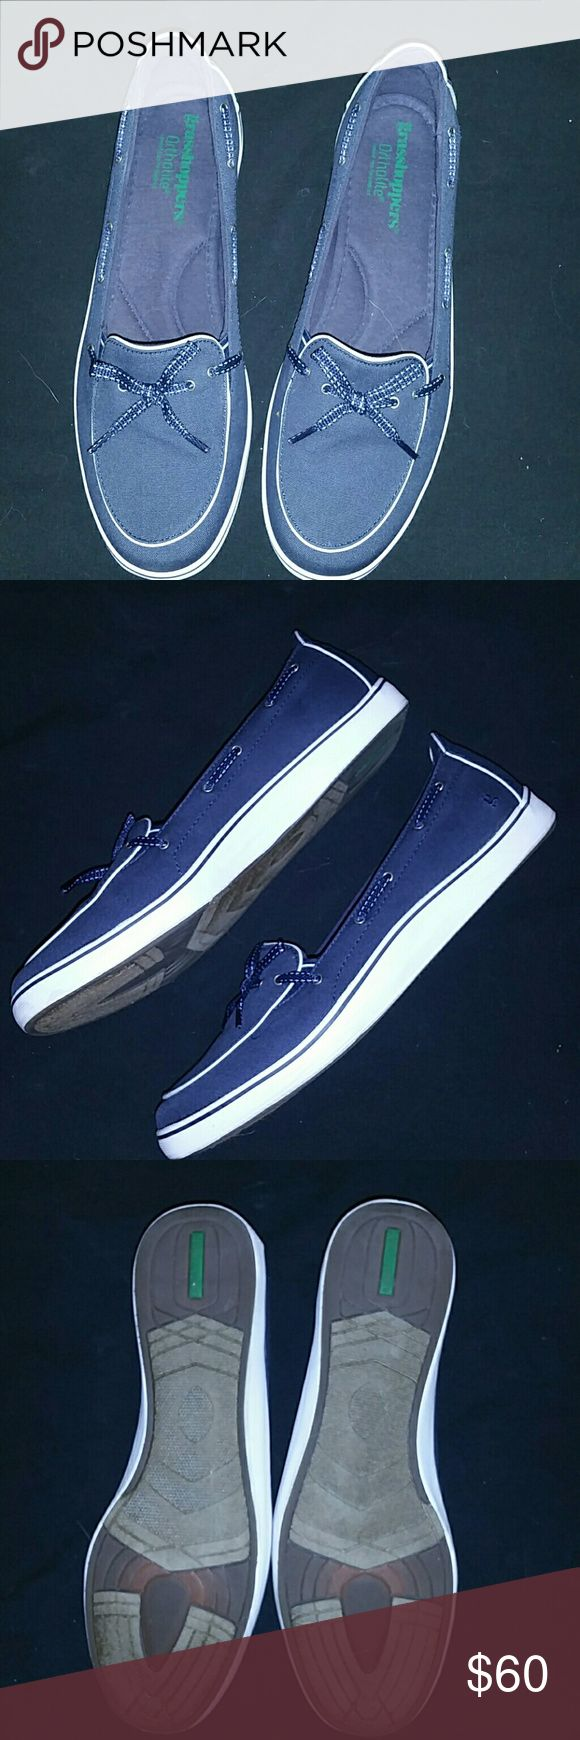 Grasshoppers navy/white boat shoes New in box, never worn navy boat shoes Grasshoppers Shoes Athletic Shoes